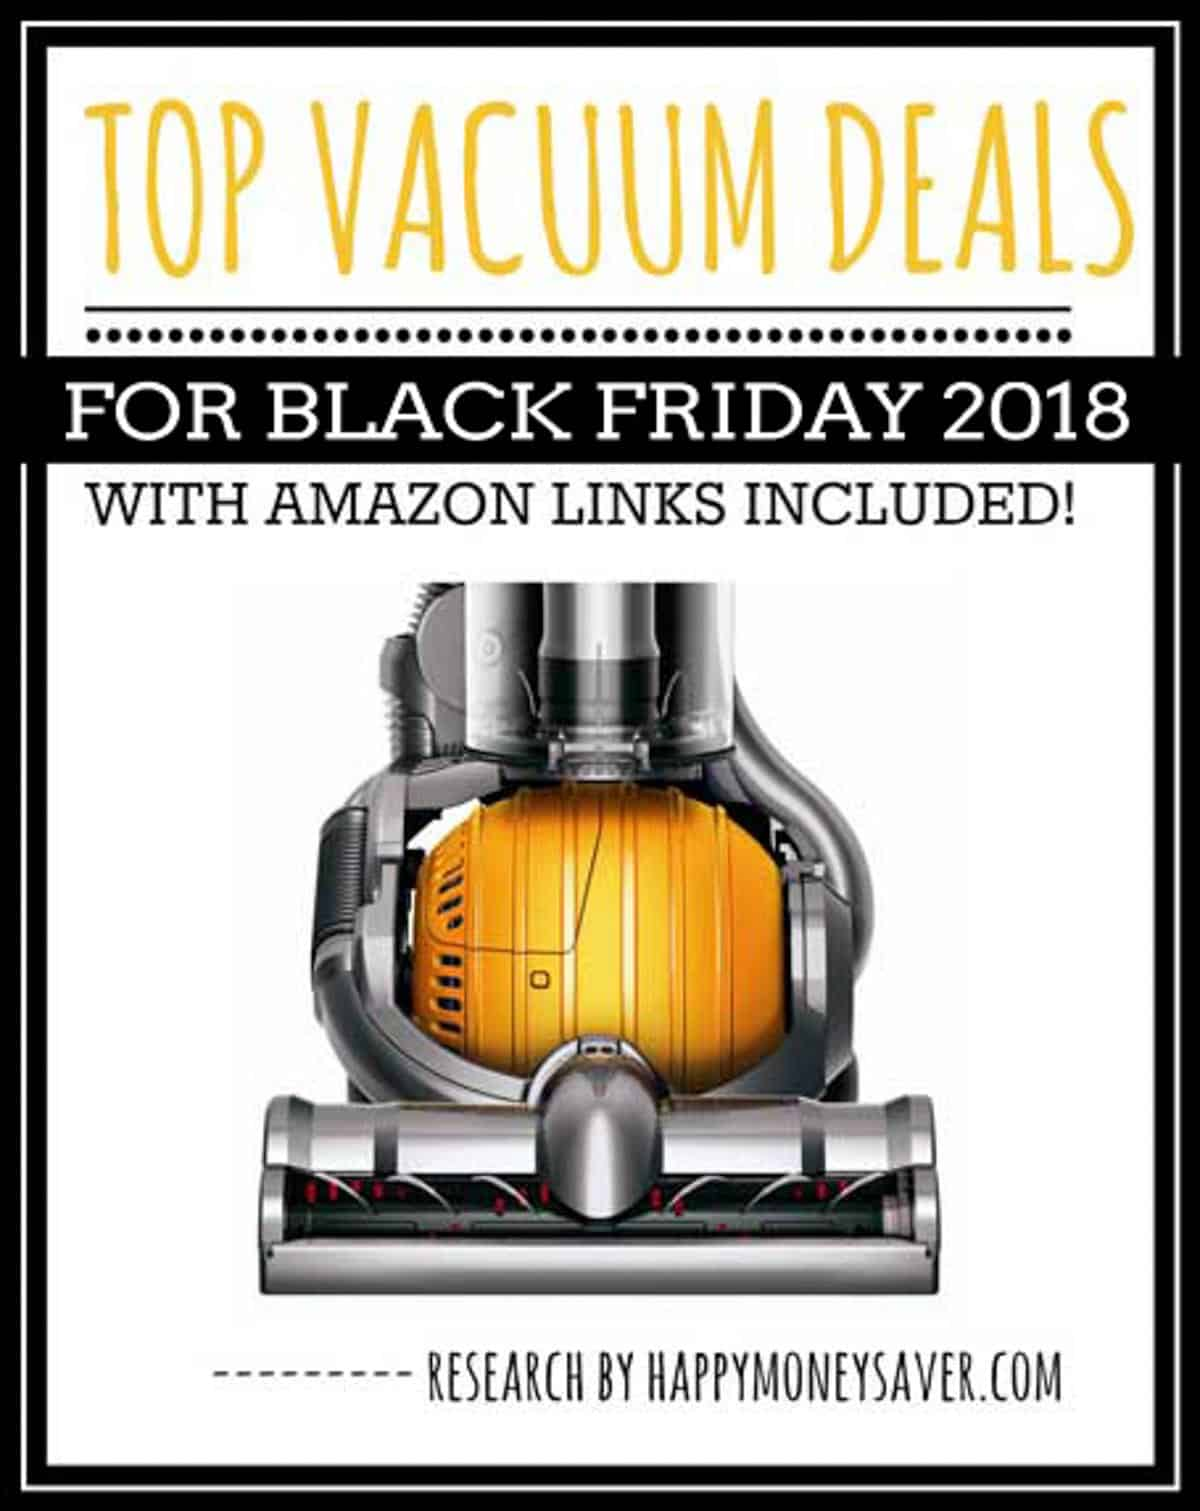 HUGE roundup of all the vacuum deals for Black Friday 2018! Black Friday Dyson deals, Robot vacuum, Hoover, Shark + more. Research is all done for you! You're gonna love this if you love saving money!